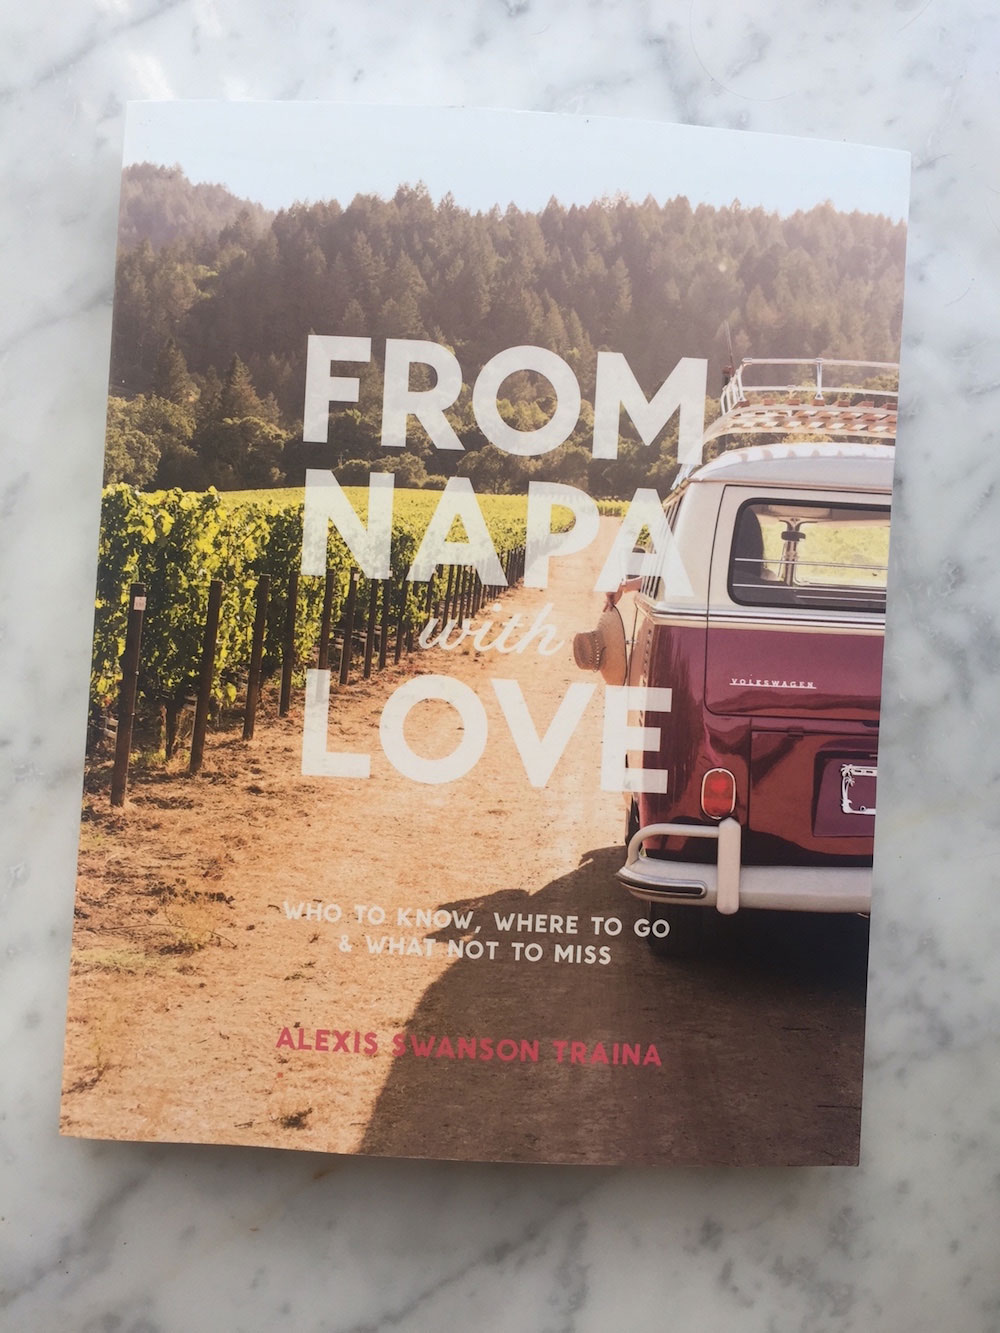 From Napa With Love by Alexis Swanson Traina